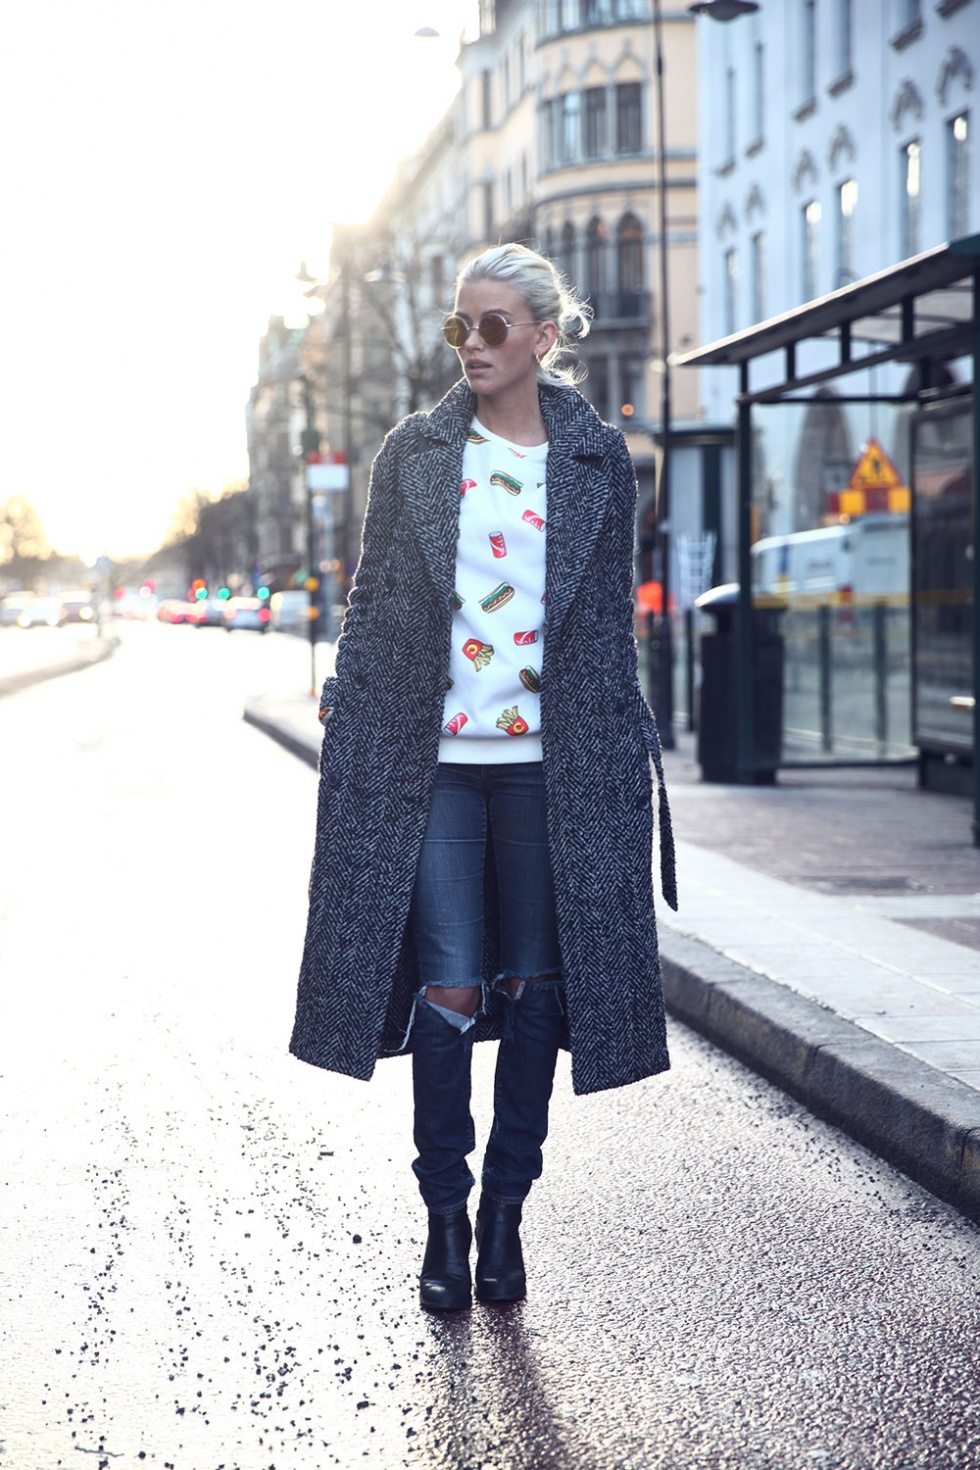 Elsa Ekman is wearing a grey robe coat from River Island, printed top from Criminal Damage, jeans from H&M and the boots are from Jeffery Campbell